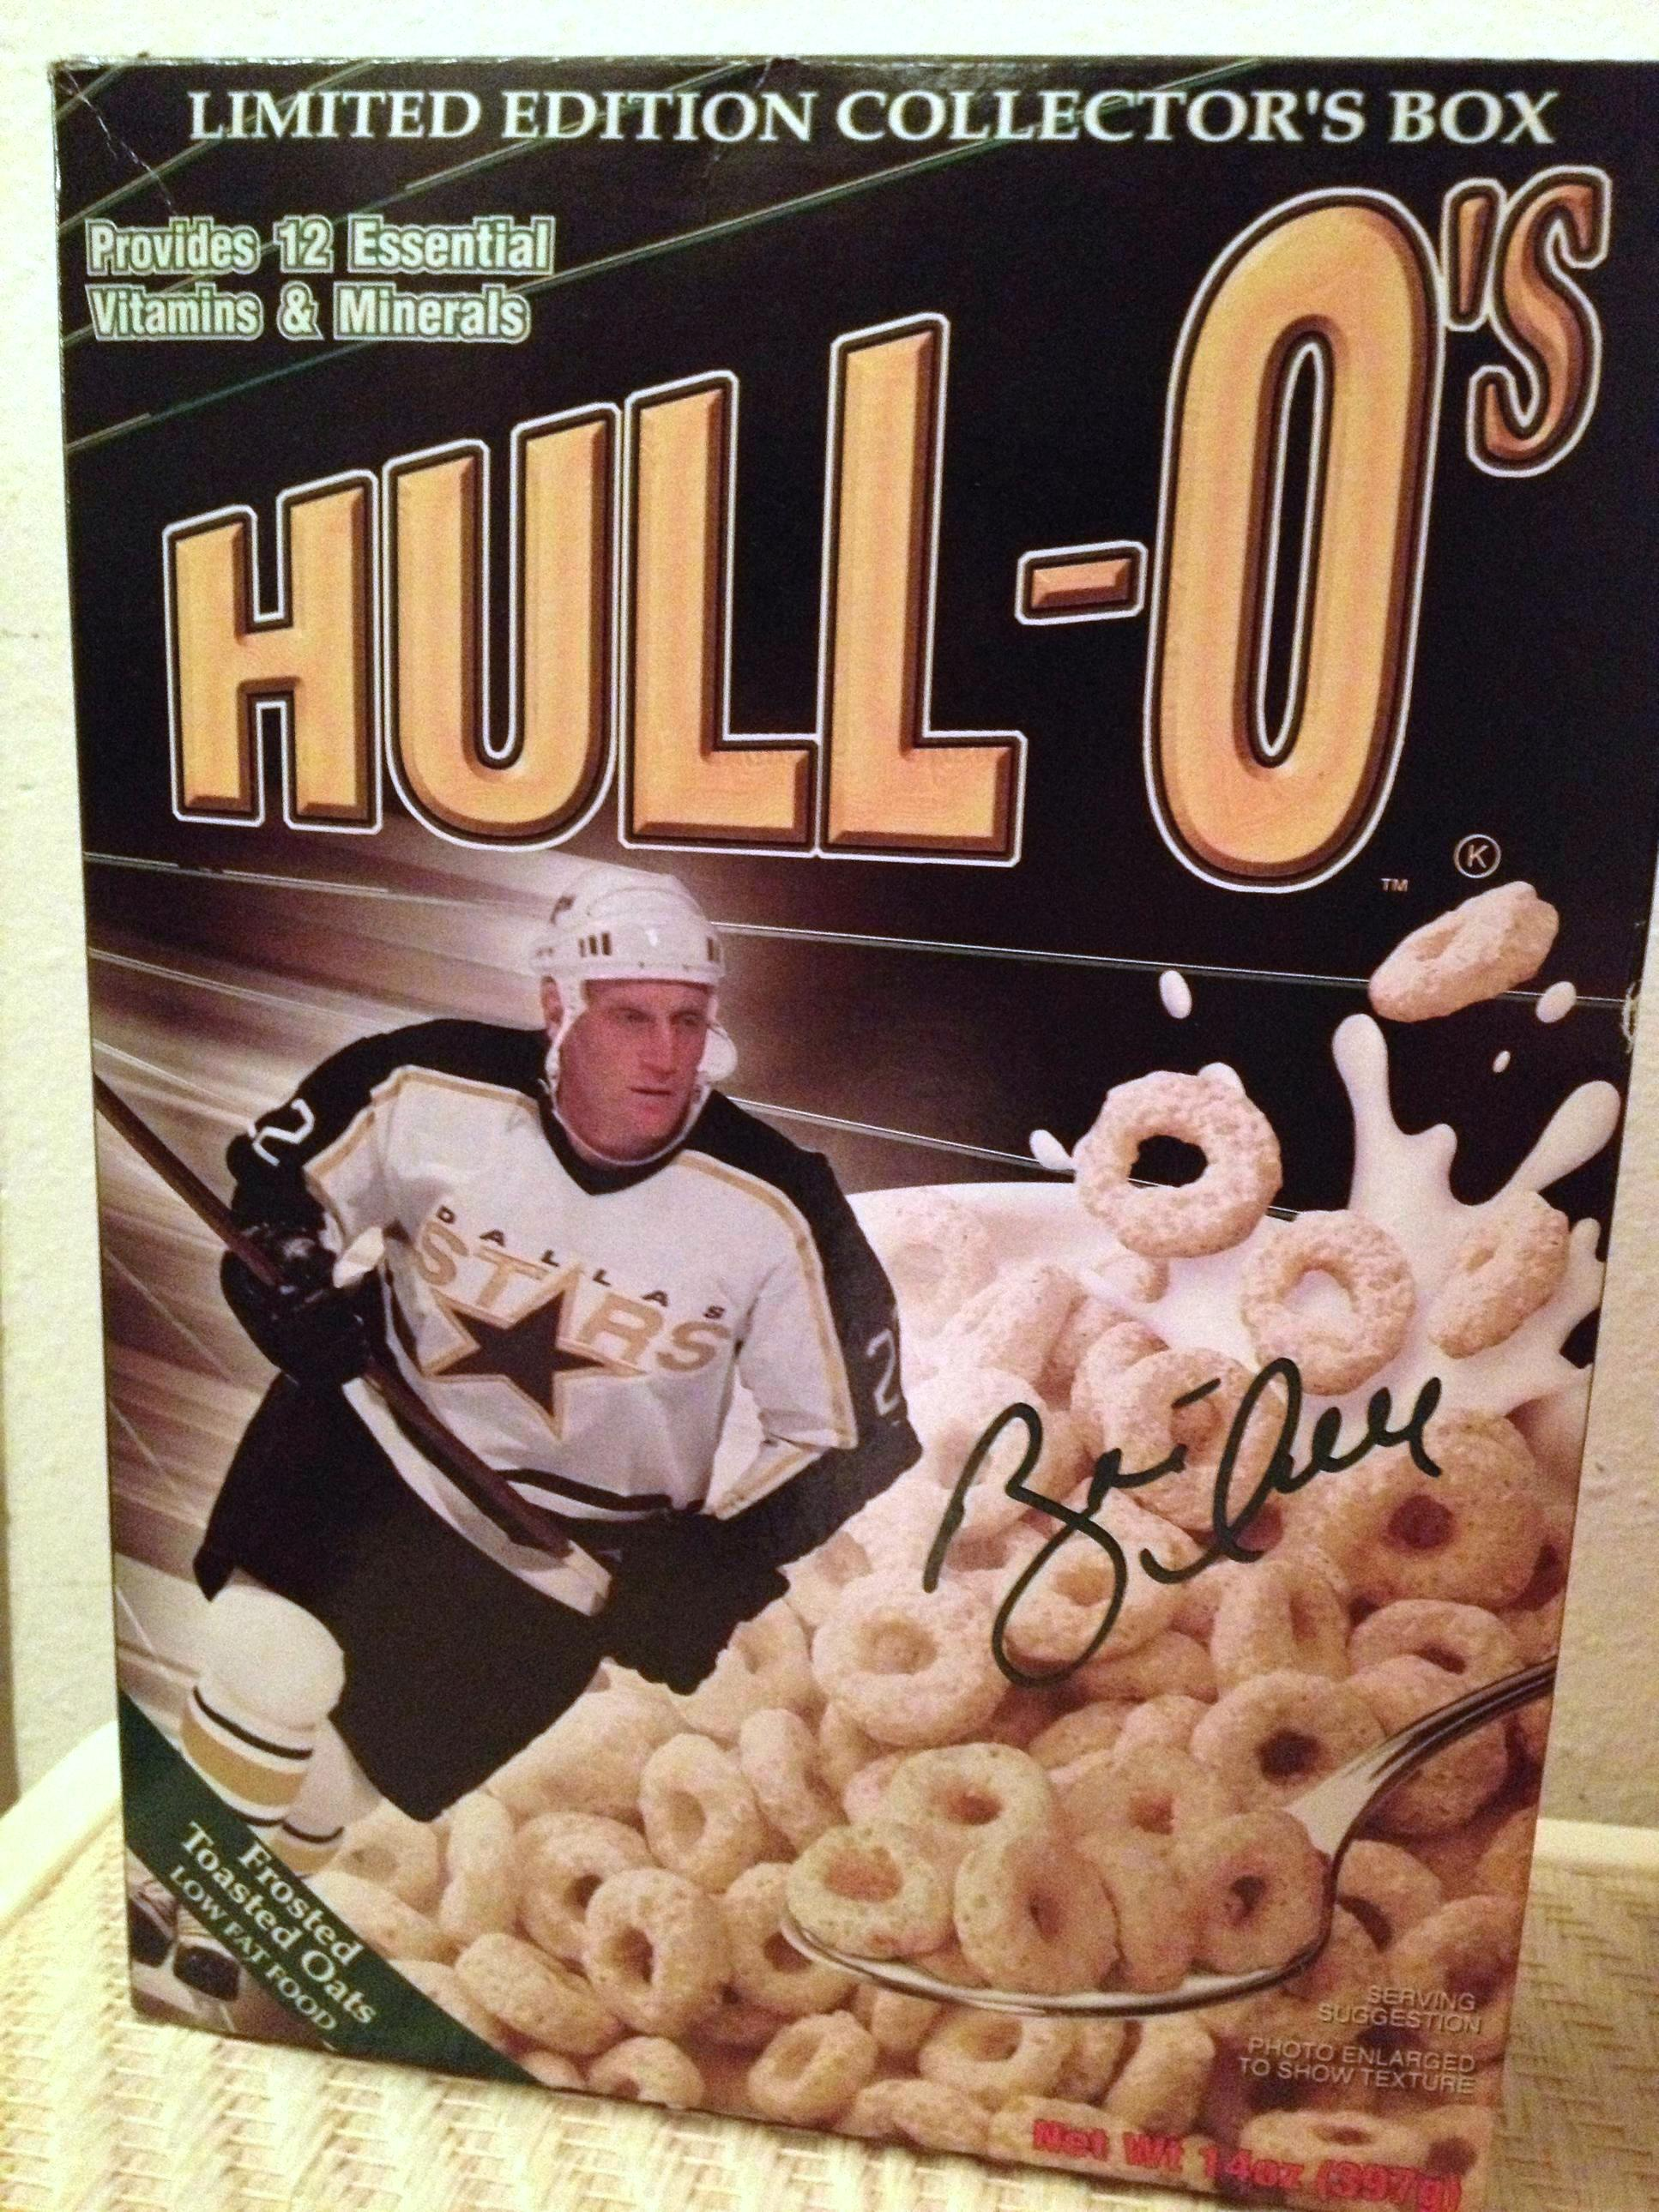 hull-os (brett hull) - athletes with their own foods